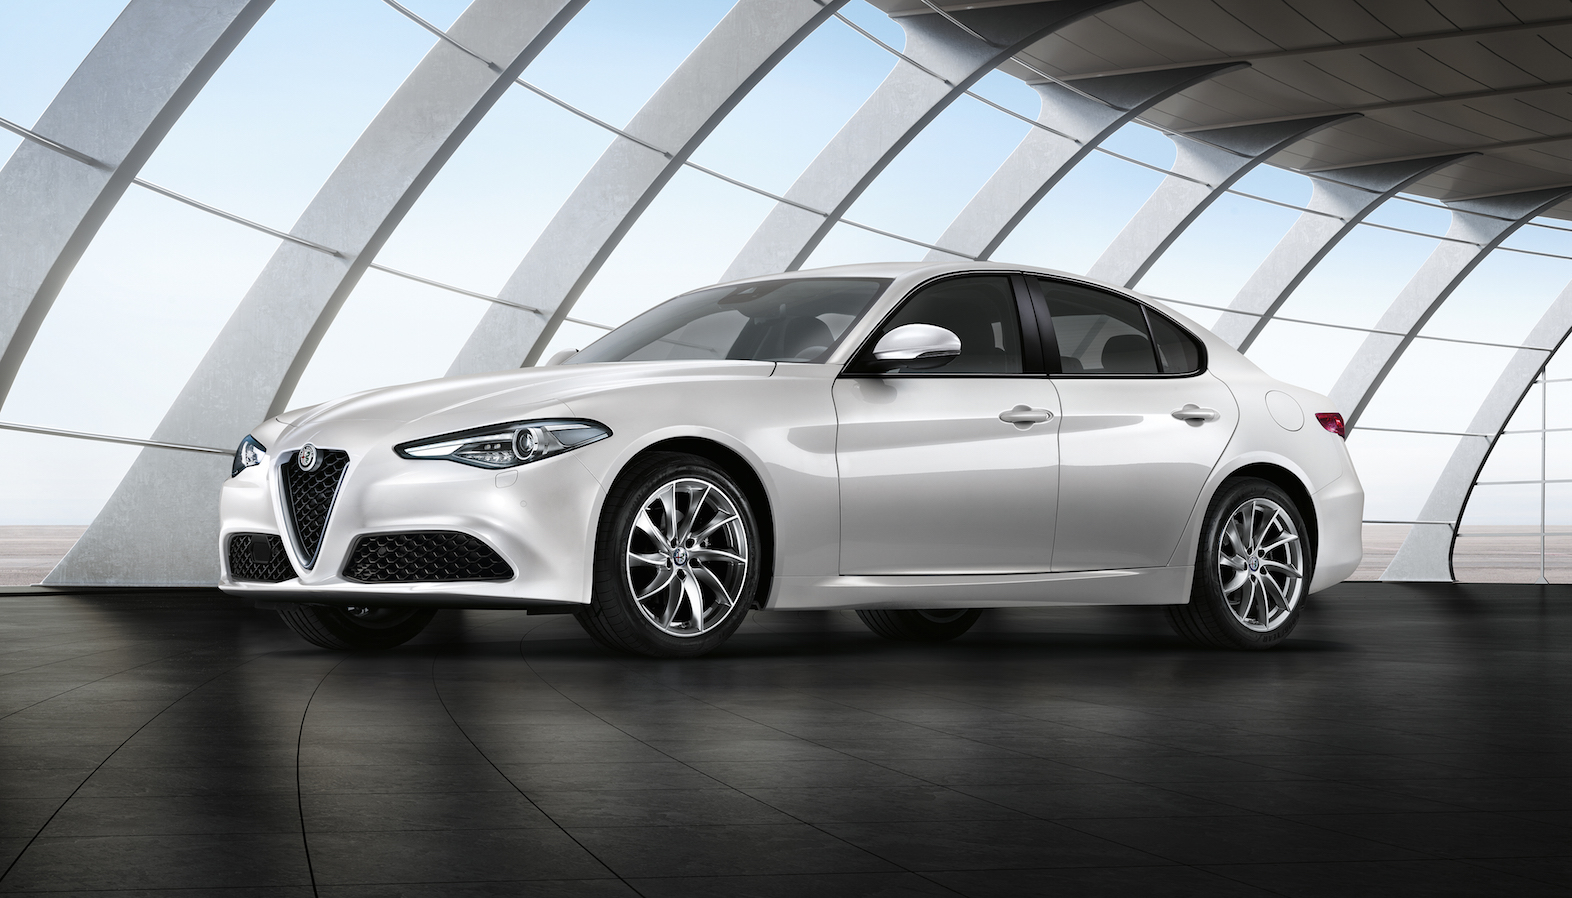 Alfa Romeo Giulia To Underpin Next Dodge Charger And Challenger